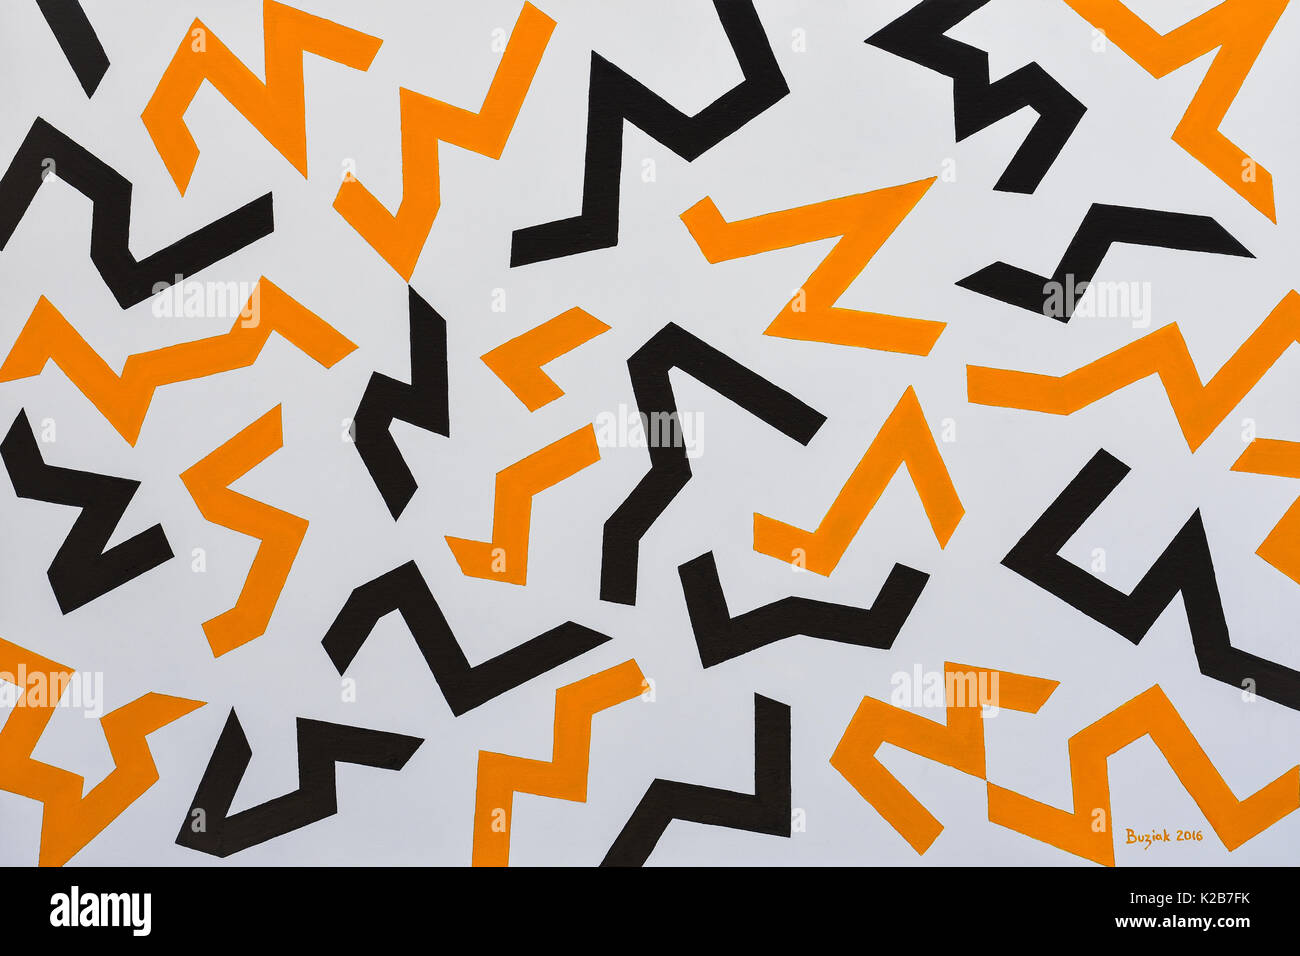 'Vauban's Hazard Stripes' - abstract artwork by Ed Buziak. - Stock Image